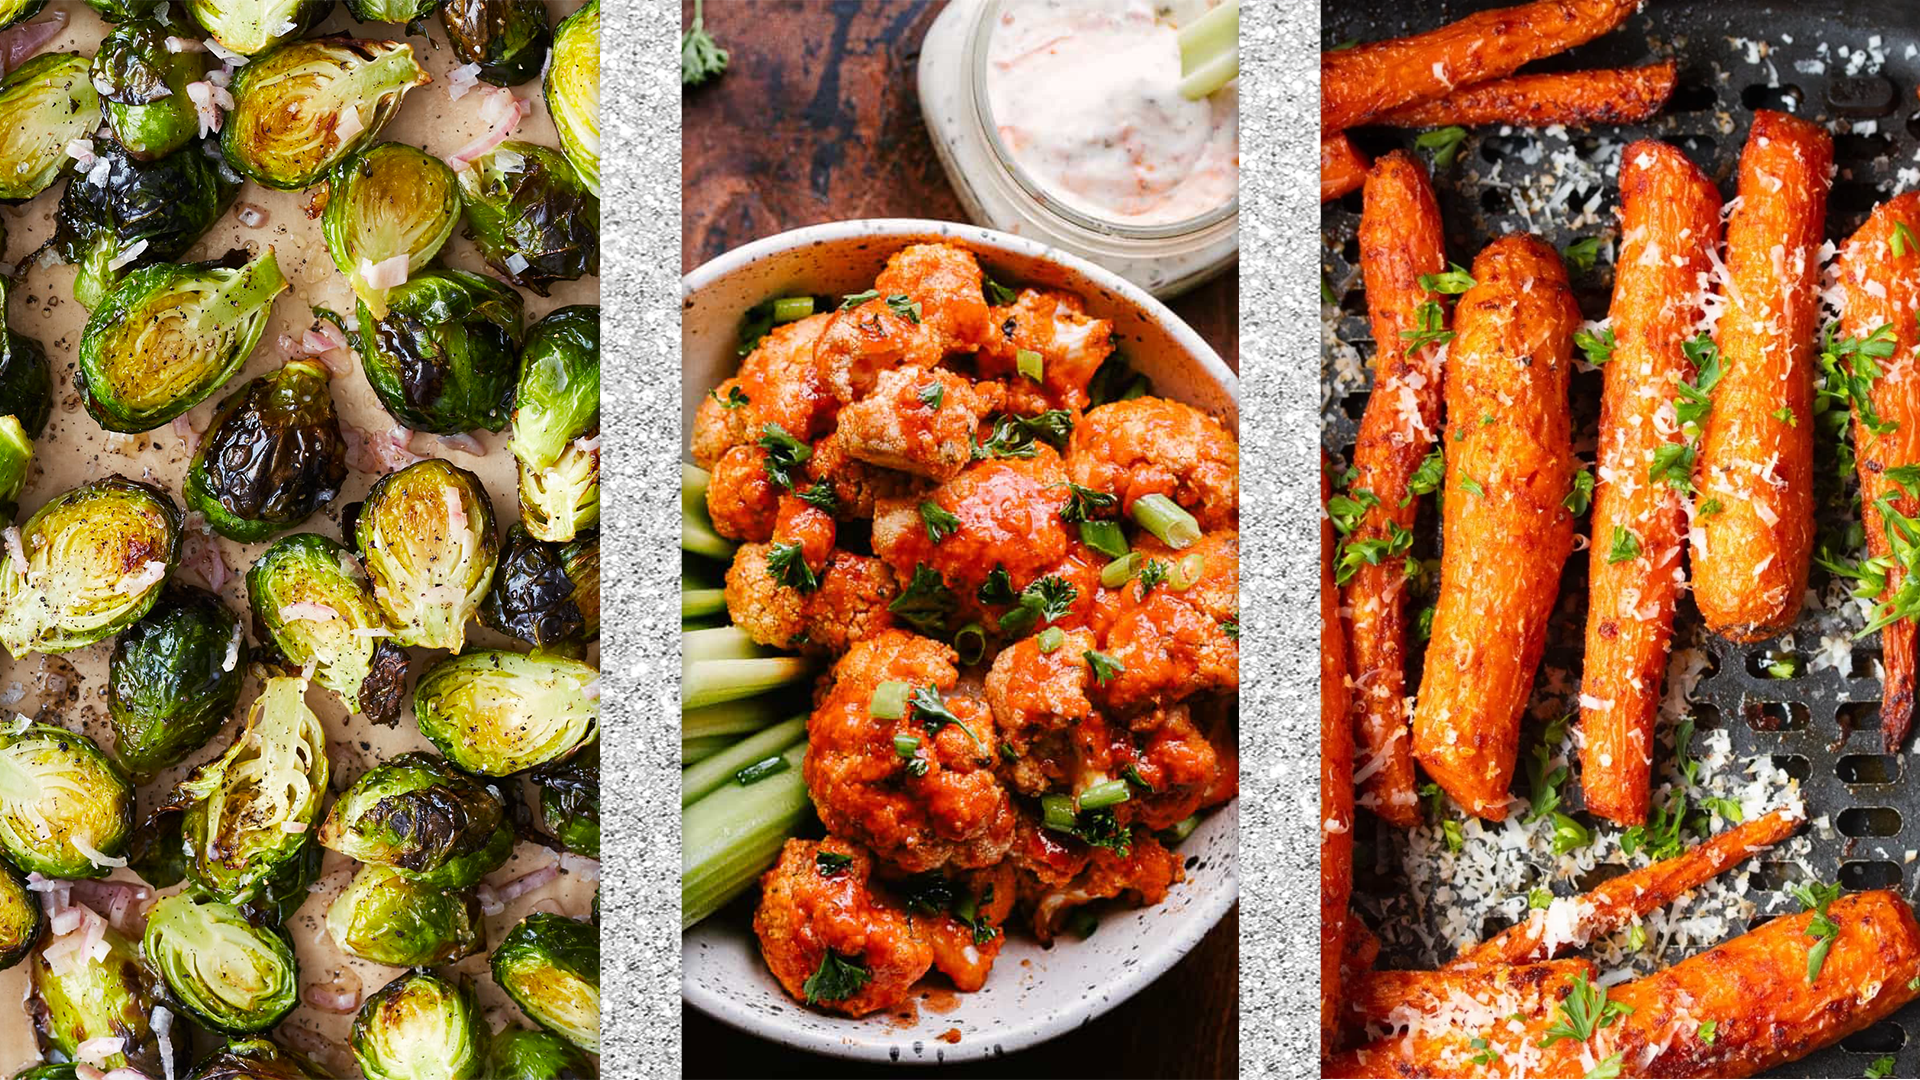 10 Air Fryer Recipes You'd Never Guess Are Actually Pretty Healthy